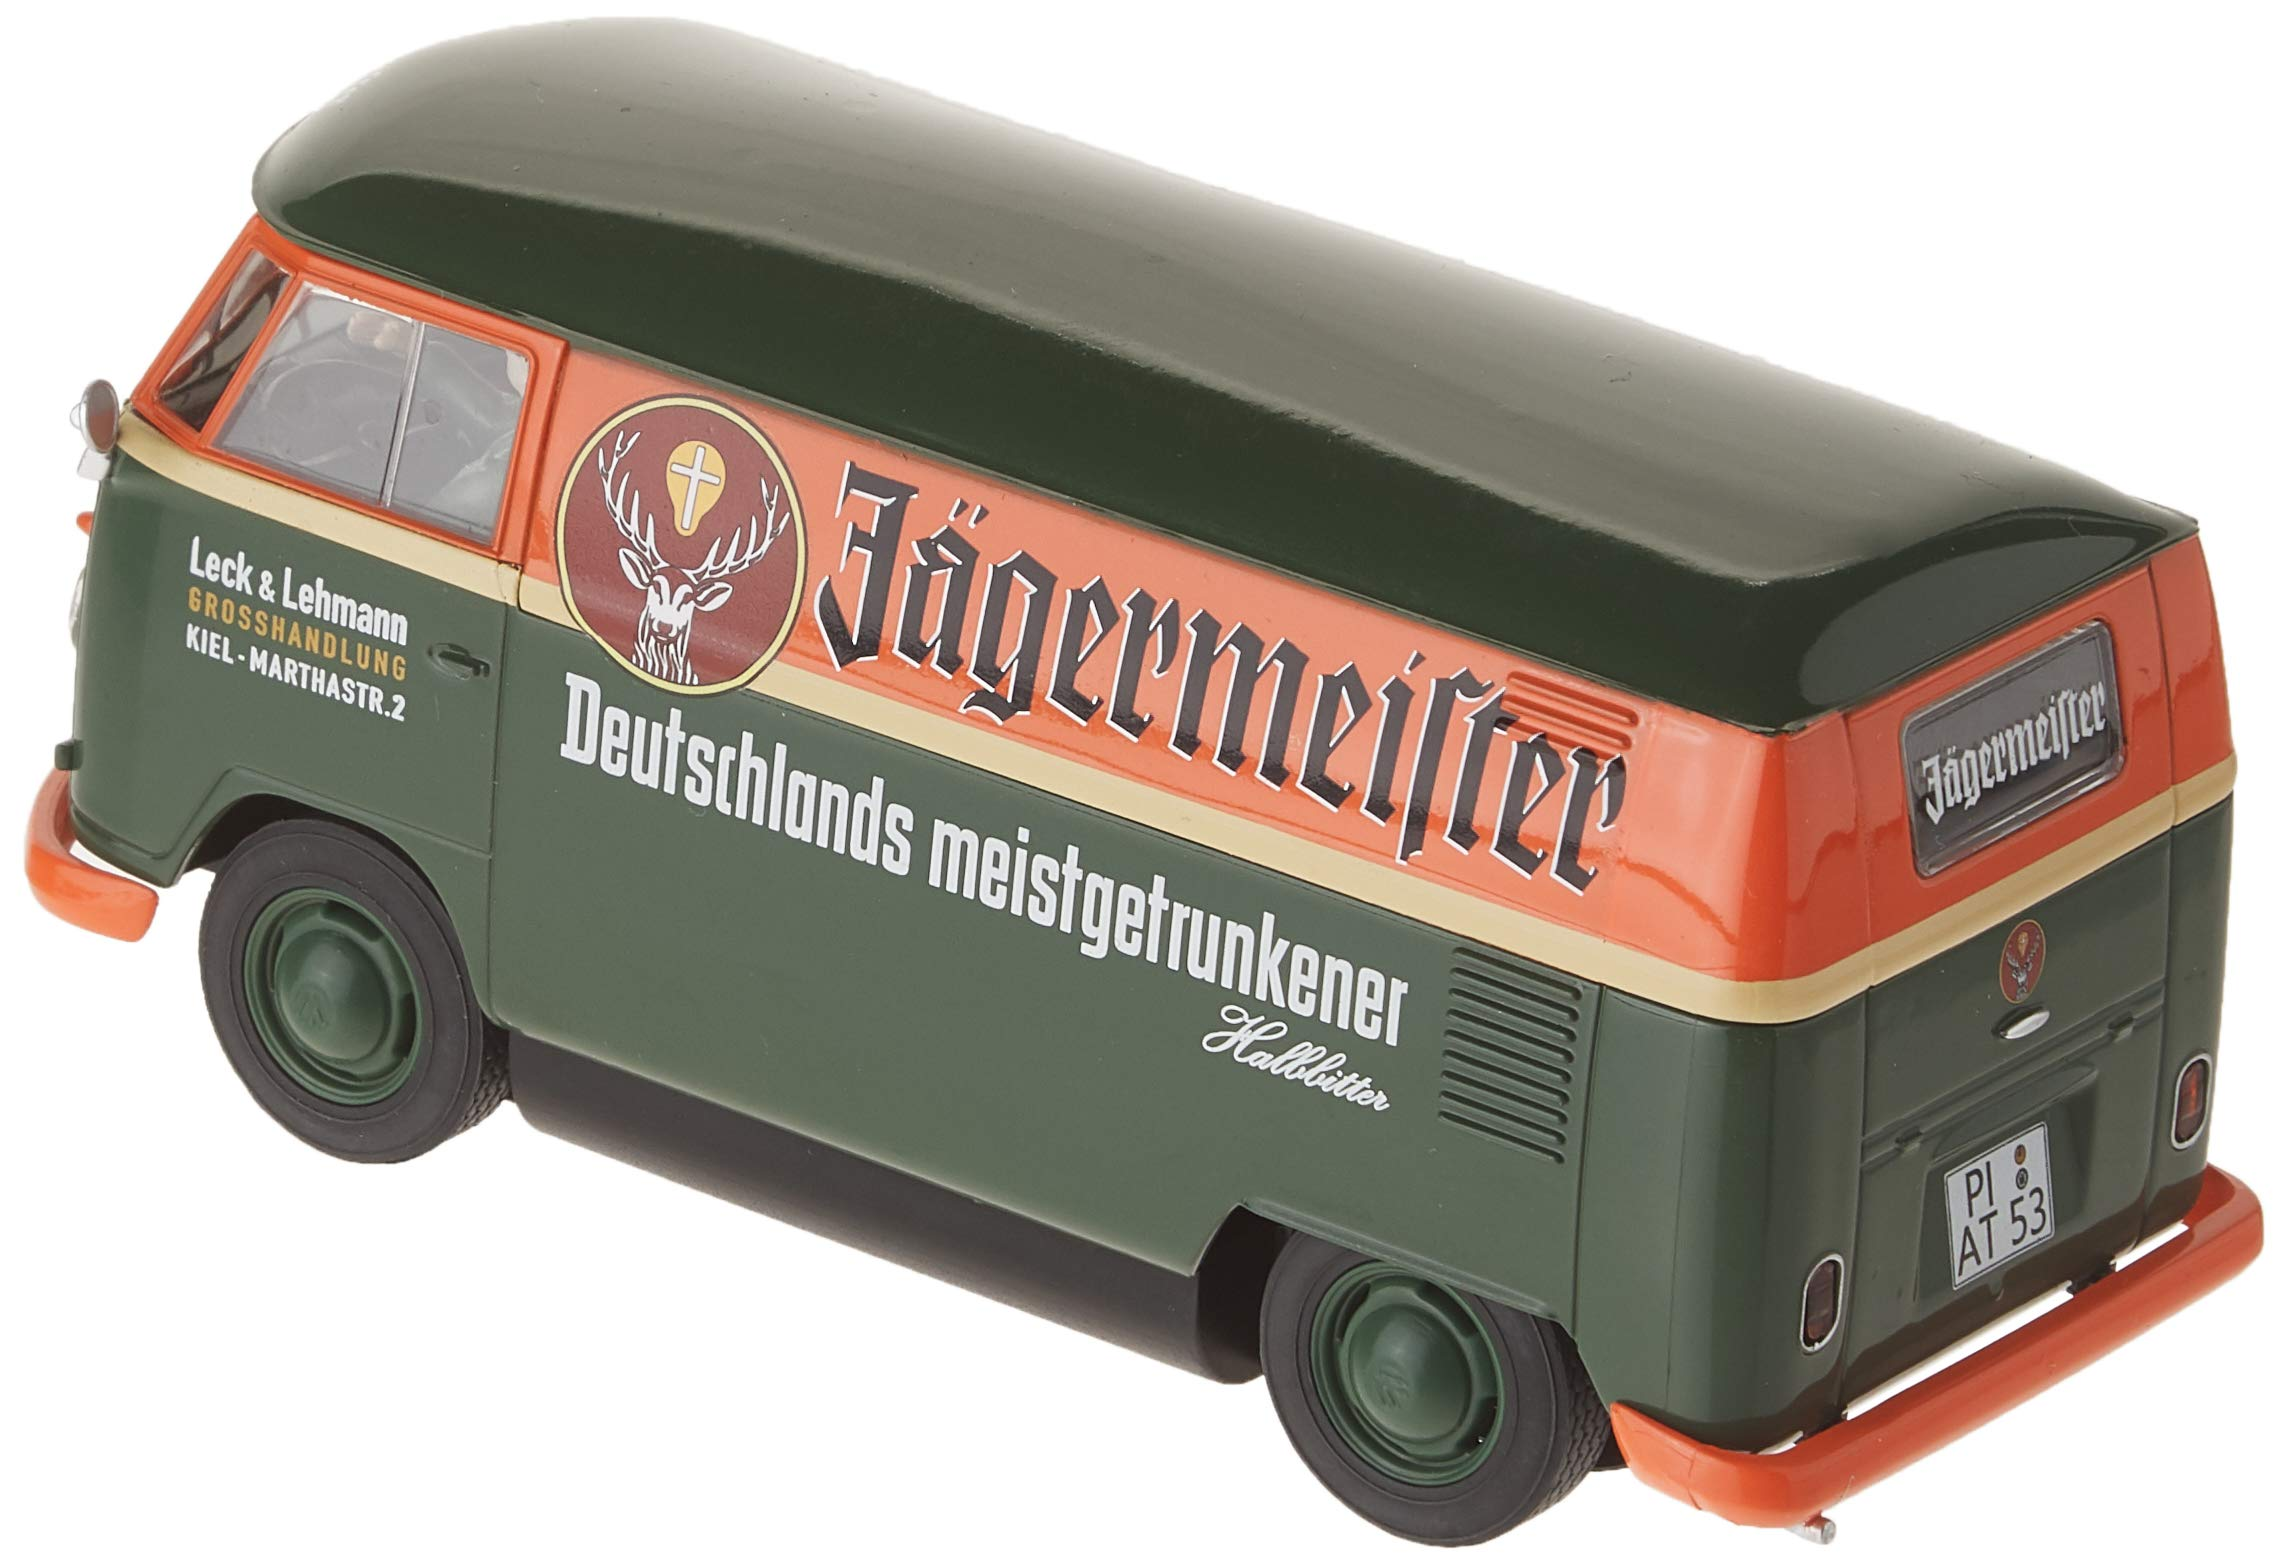 Scalextric Volkswagen Jagermeister Panelvan 1:32 Slot Race Car C3938 by Scalextric (Image #2)